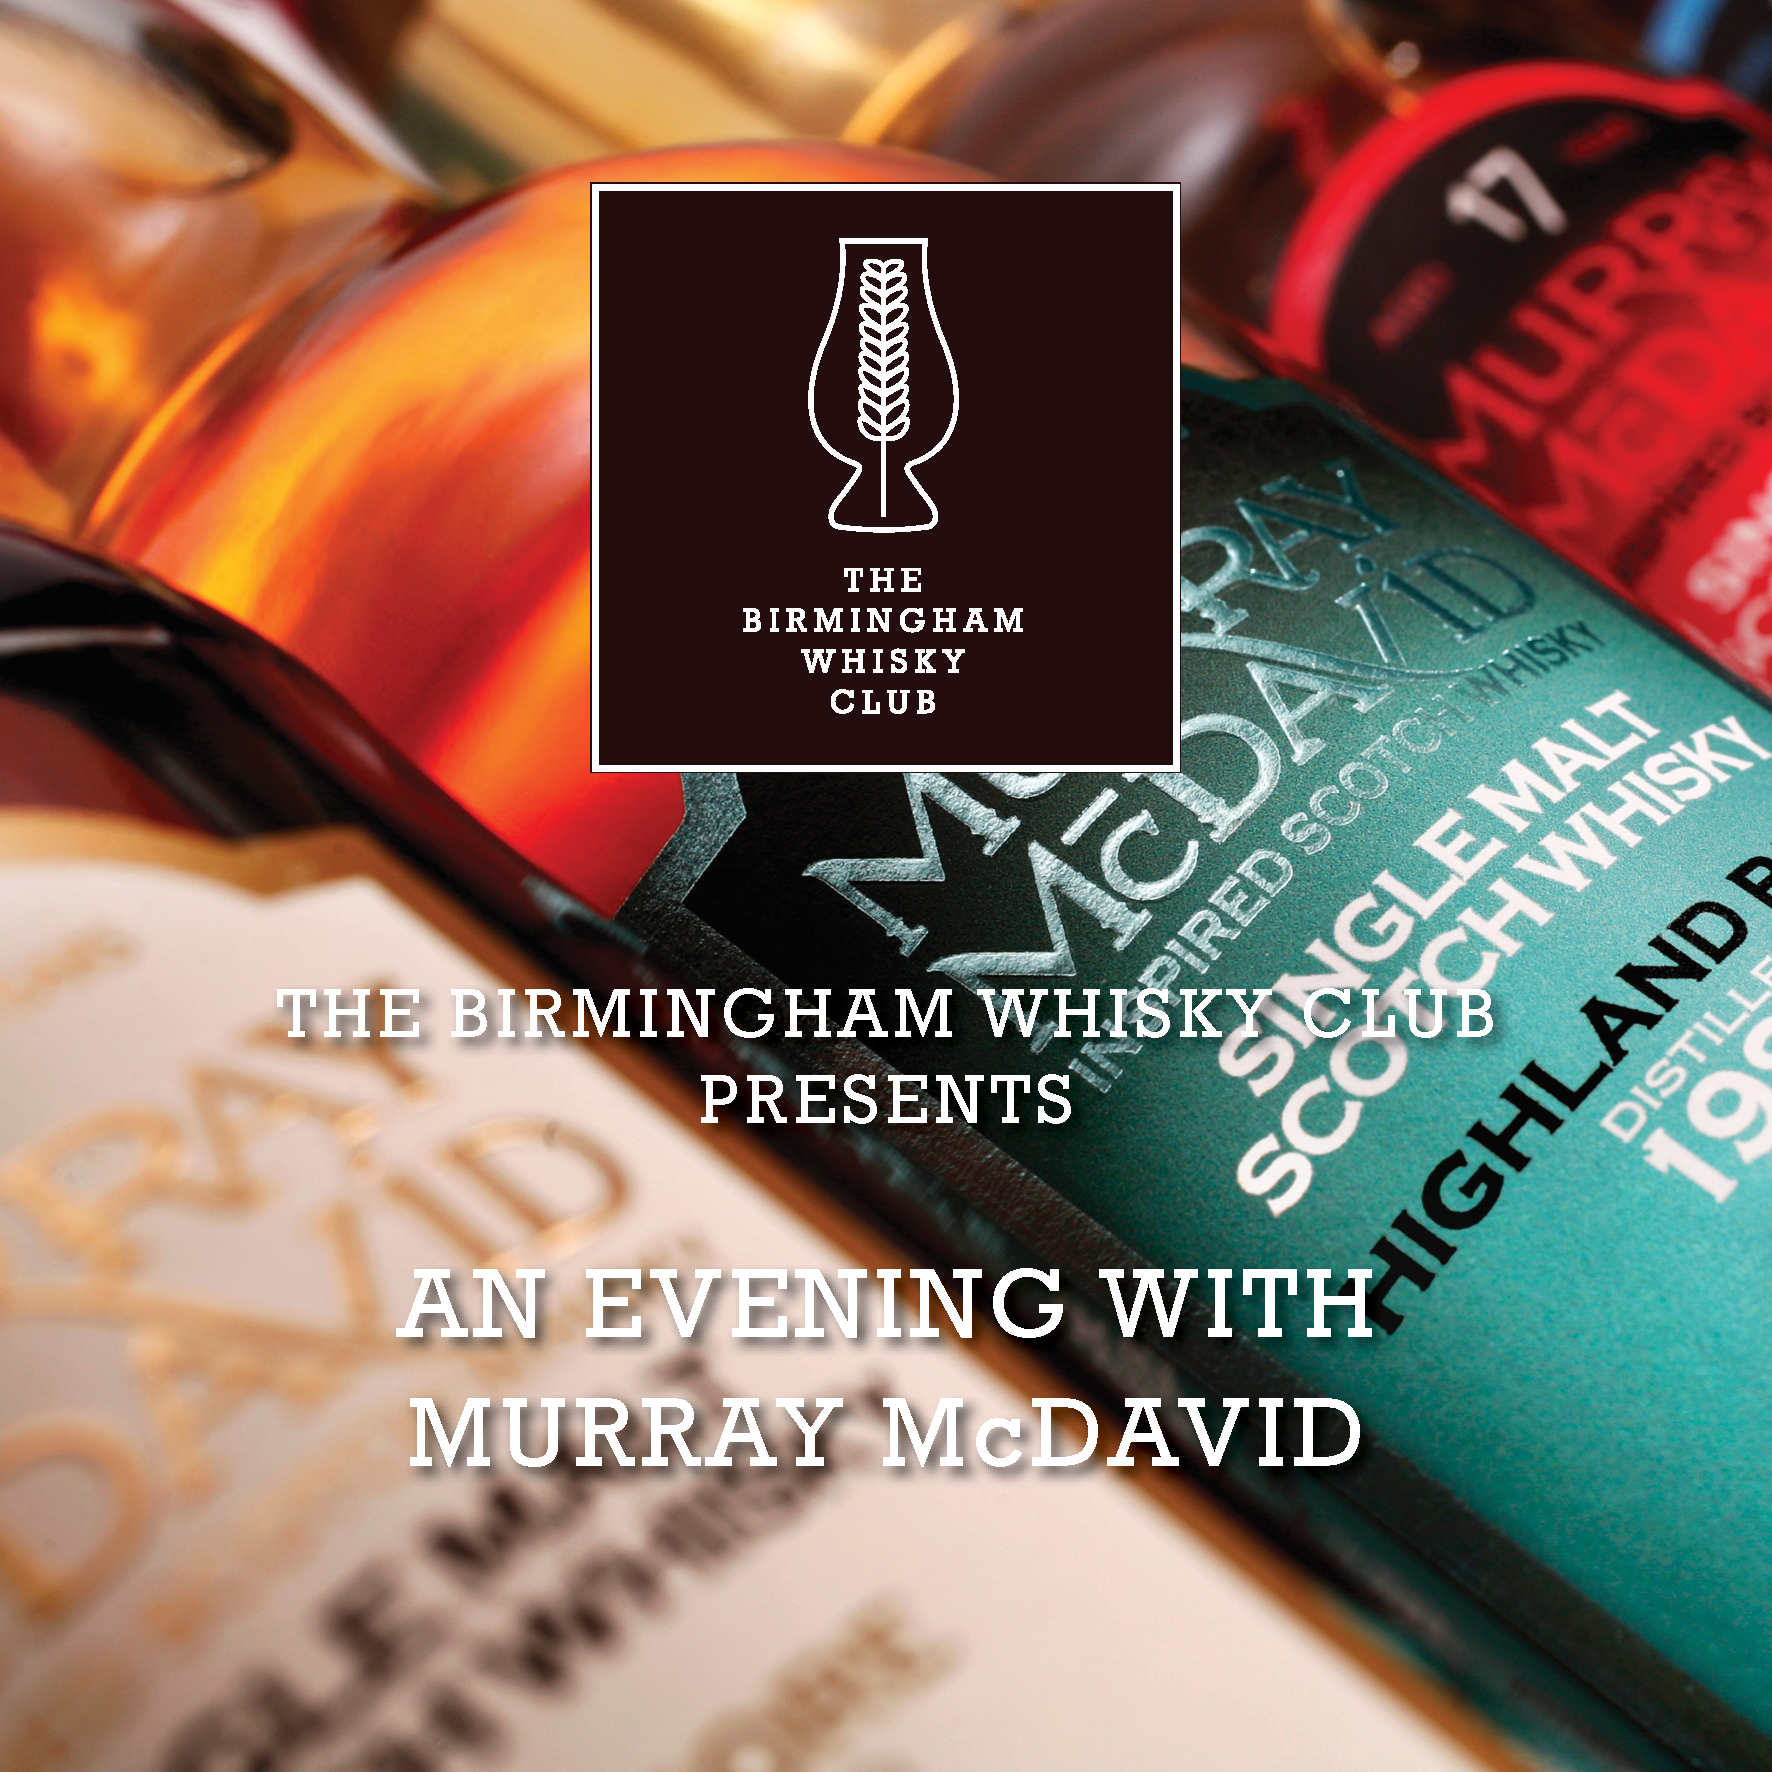 The Birmingham Whisky Club Presents :: An Evening With Murray McDavid